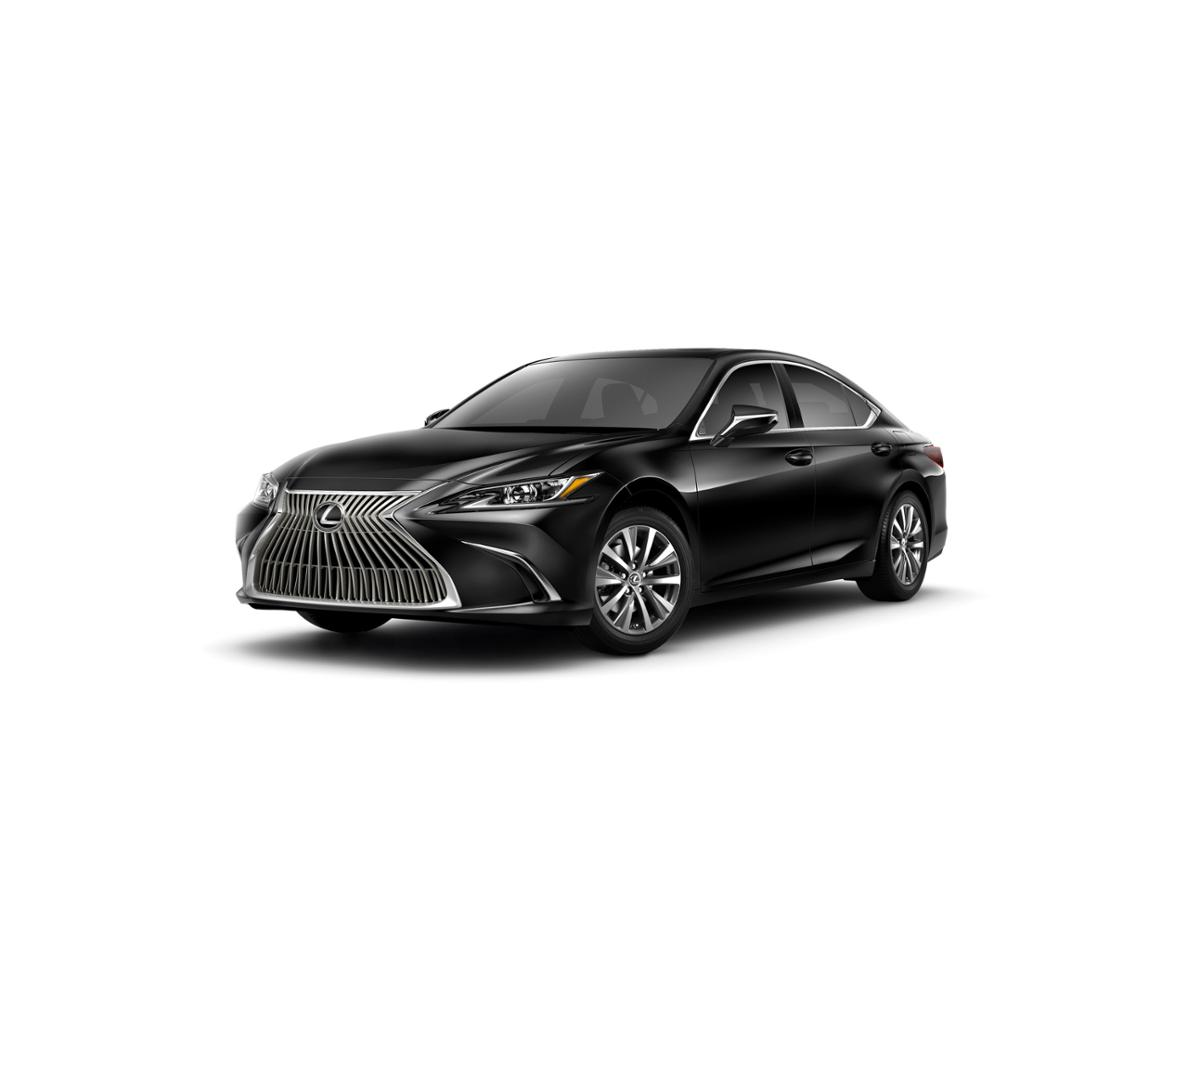 Dallas 2019 New Lexus ES 350 Models For Sale